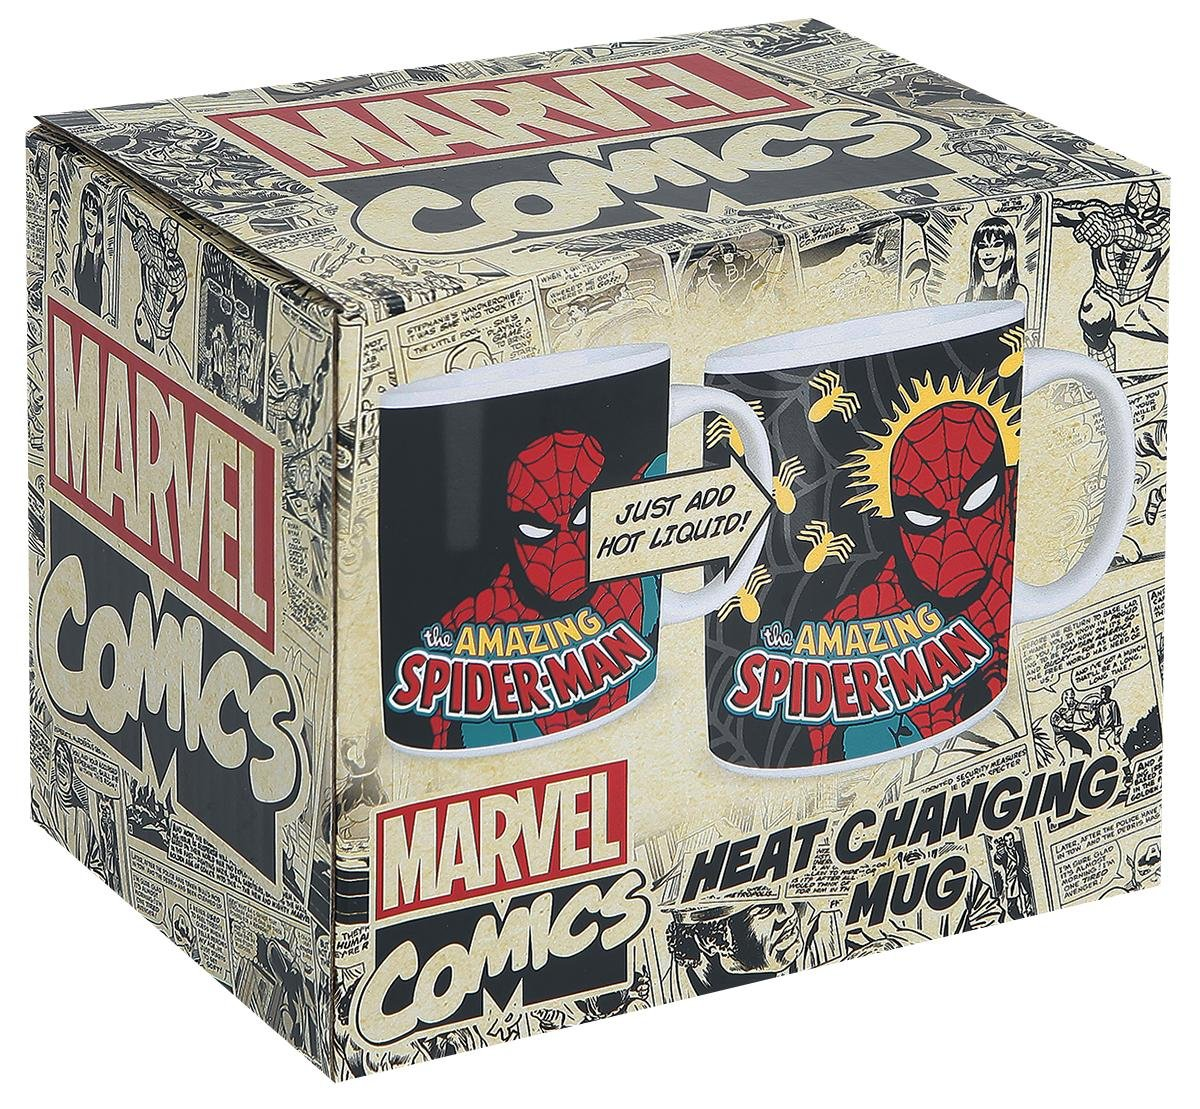 Spider-Man Heat Change Mug Tazas multicolor: Amazon.es: Hogar